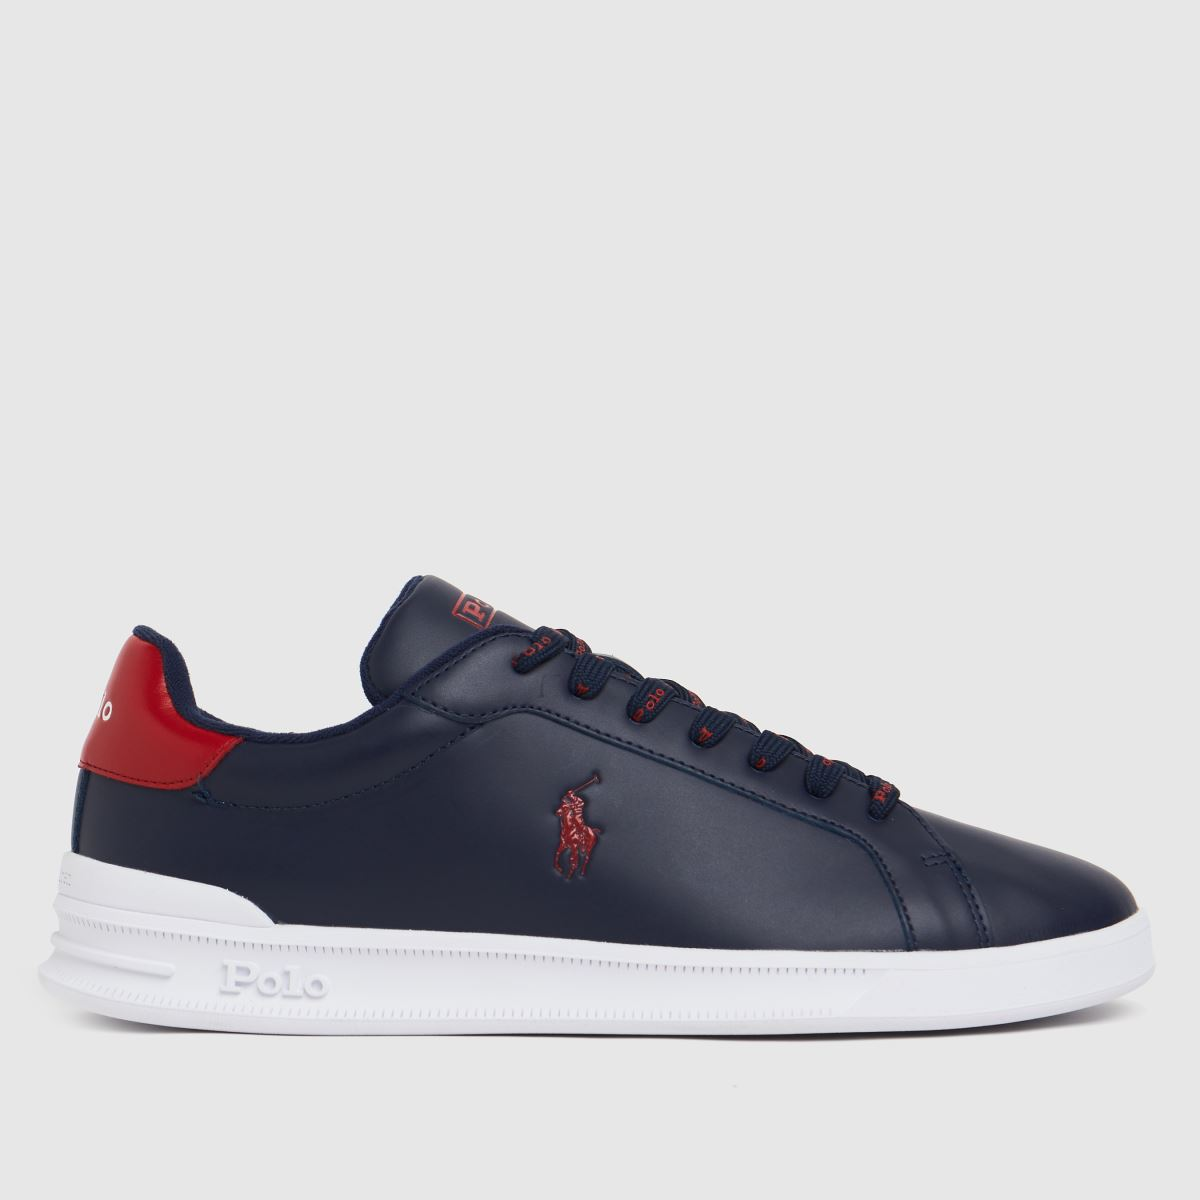 Polo Ralph Lauren White & Navy Heritage Court Shoes